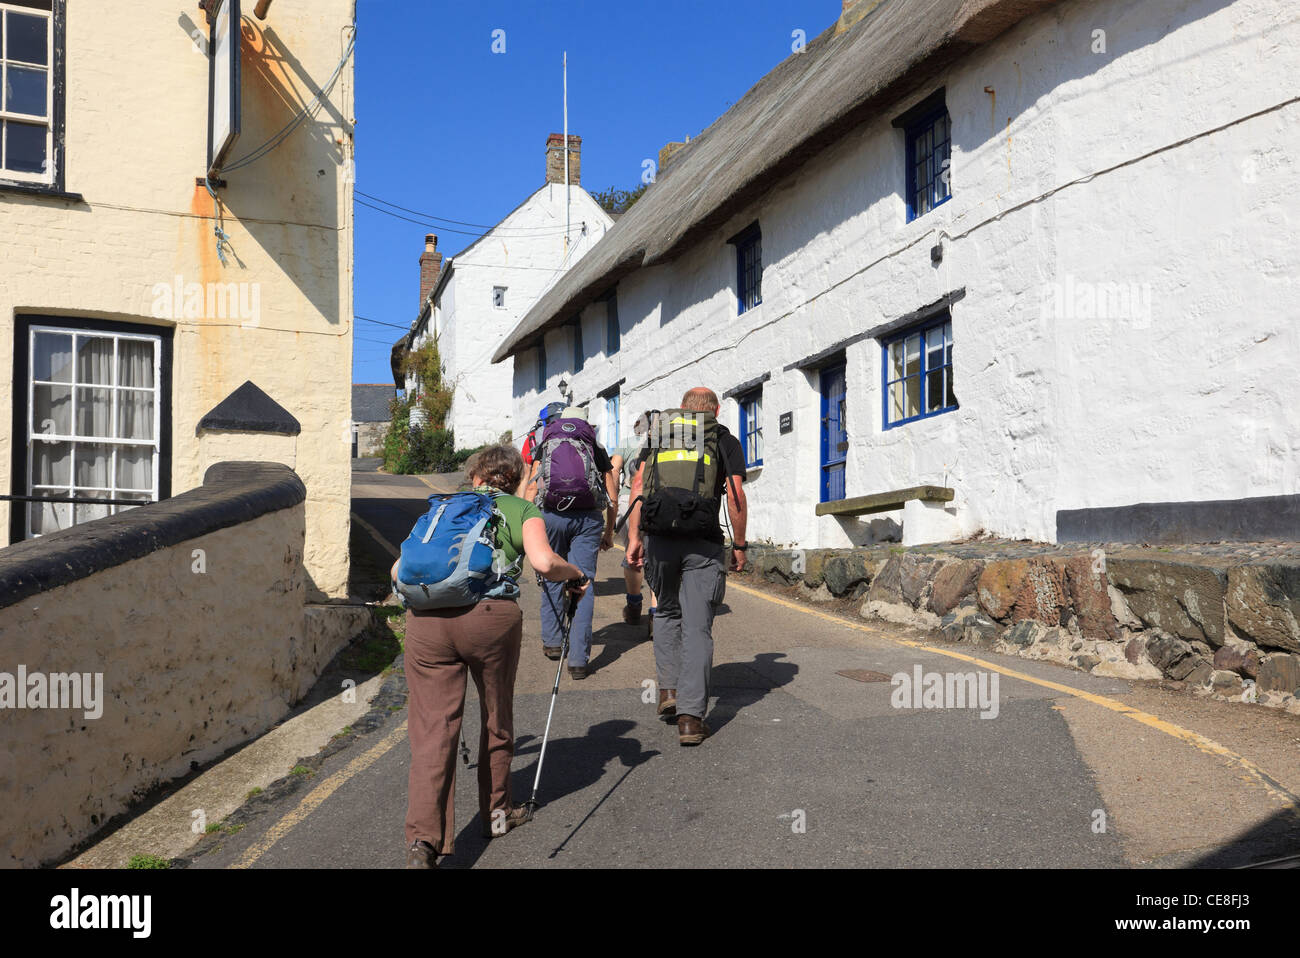 Group of walkers walking up steep hill through narrow village street with white cottages in Cadgwith Cornwall England - Stock Image